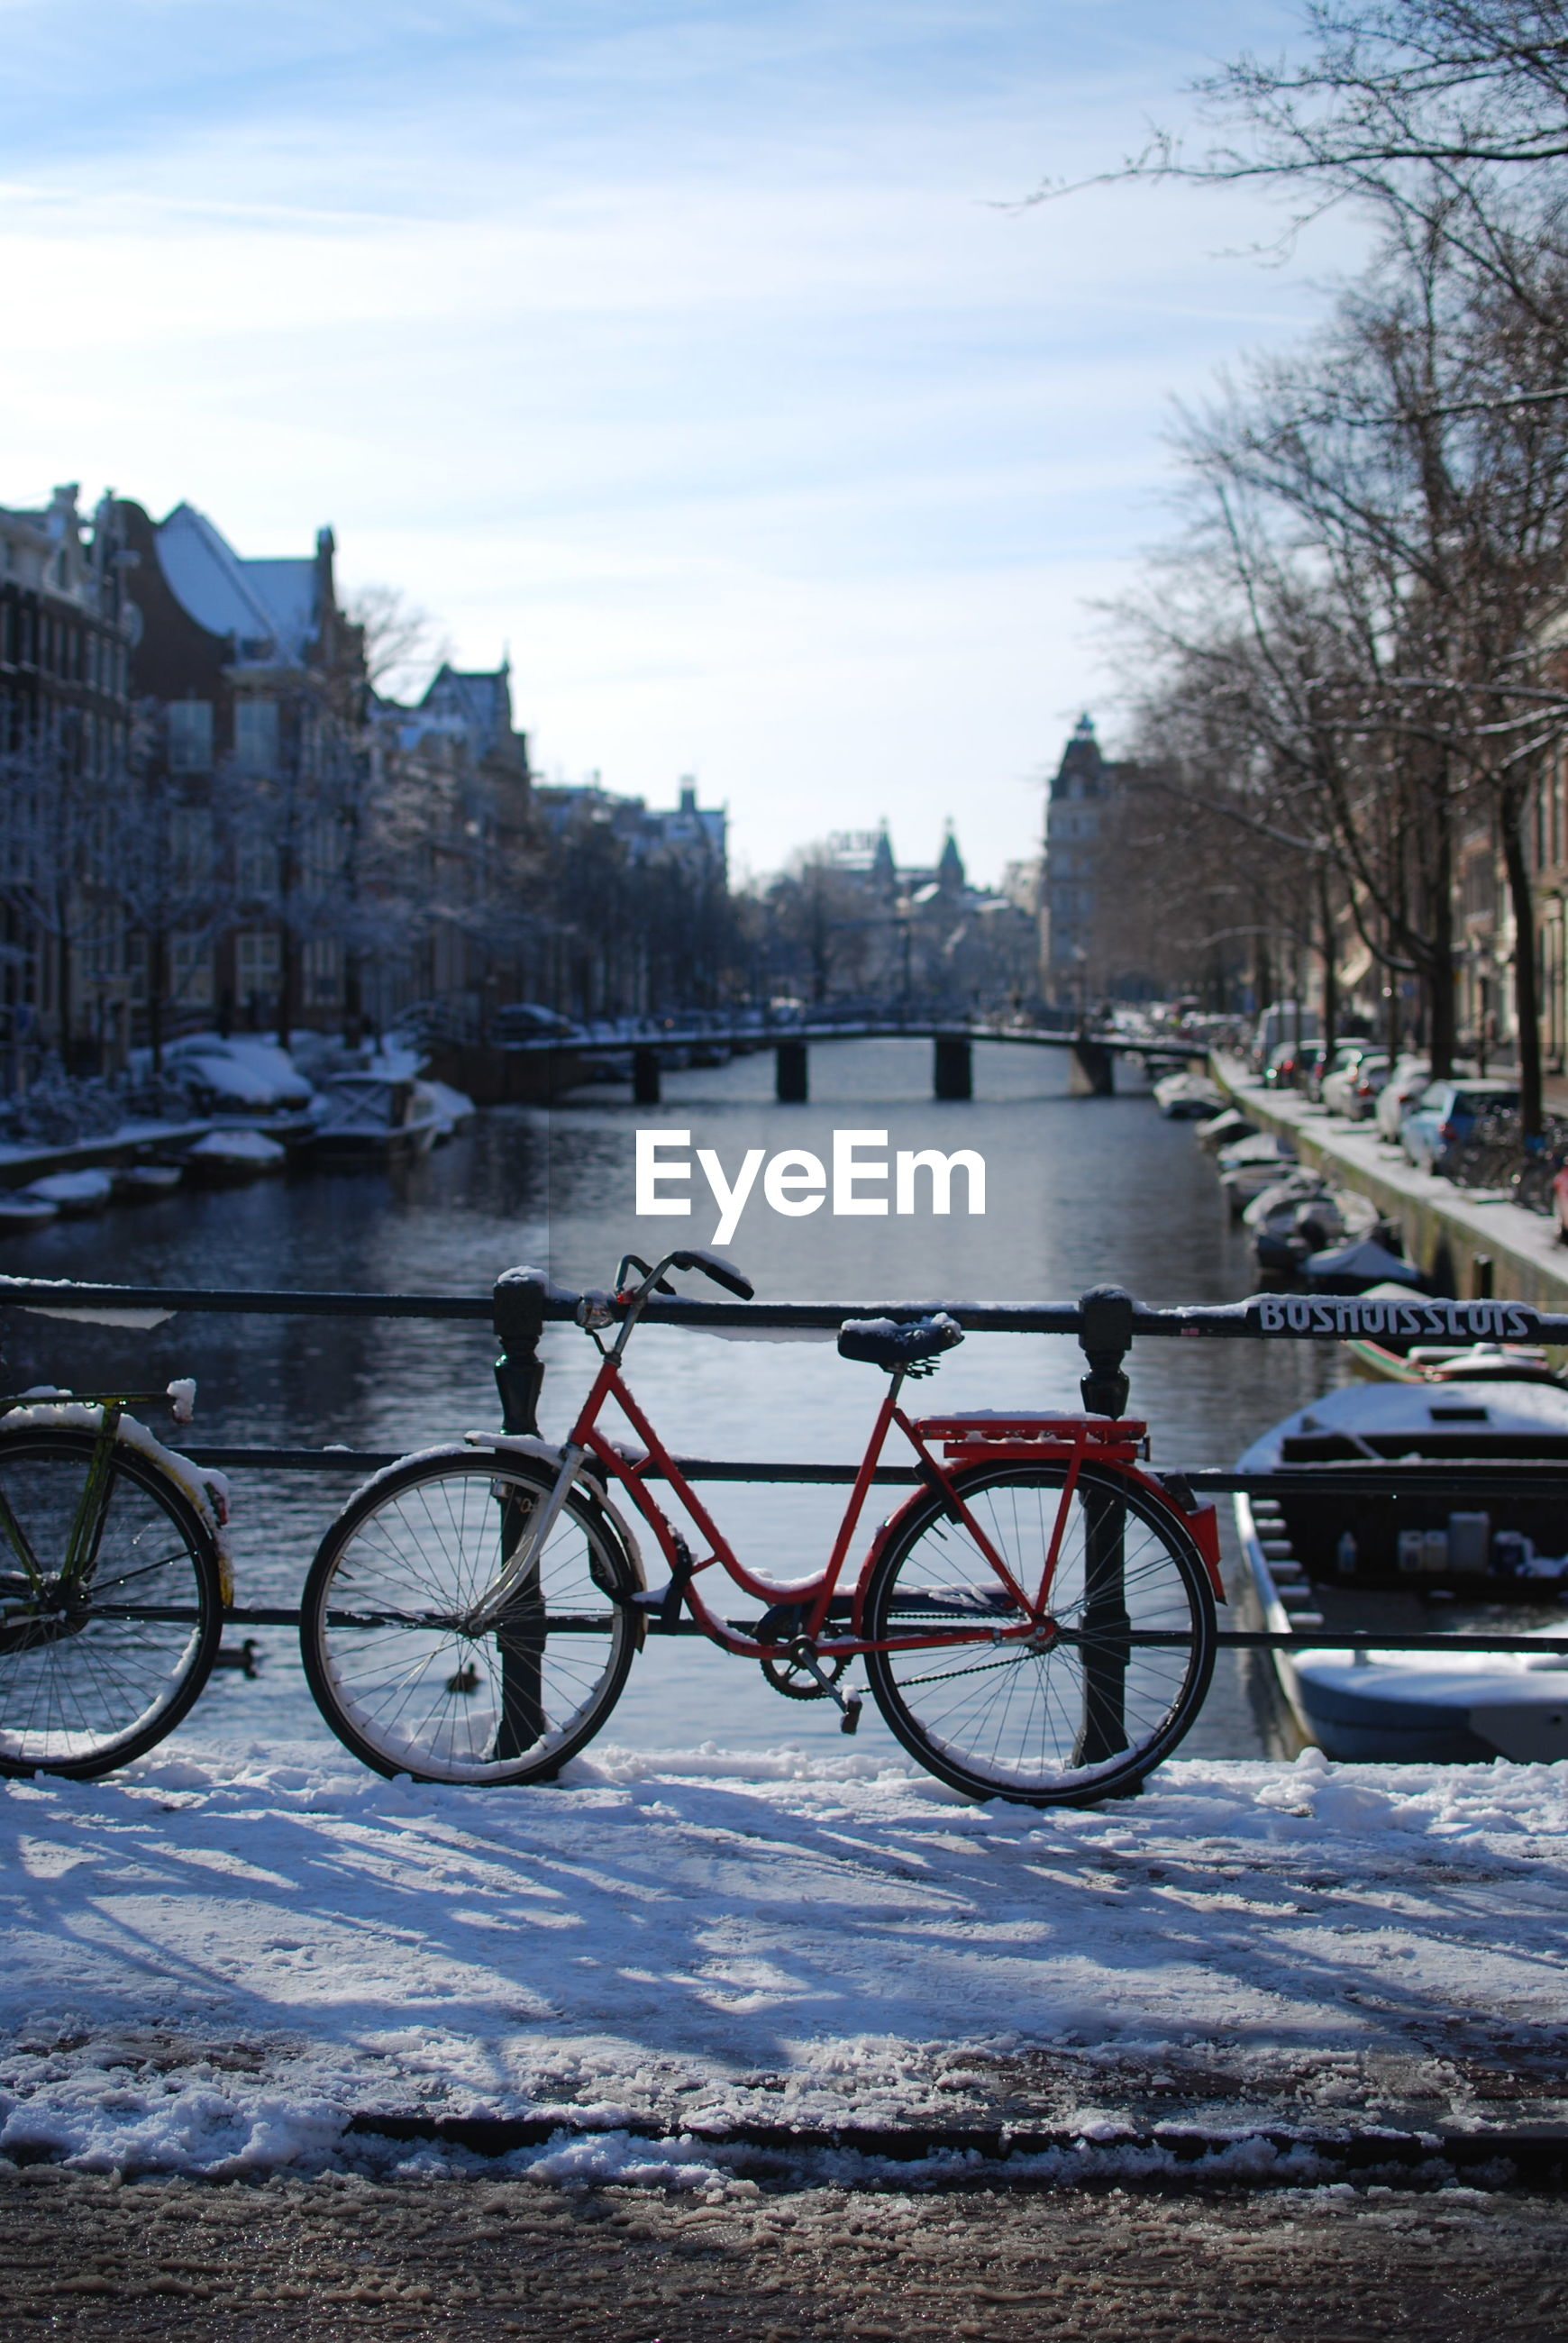 BICYCLE PARKED IN WINTER